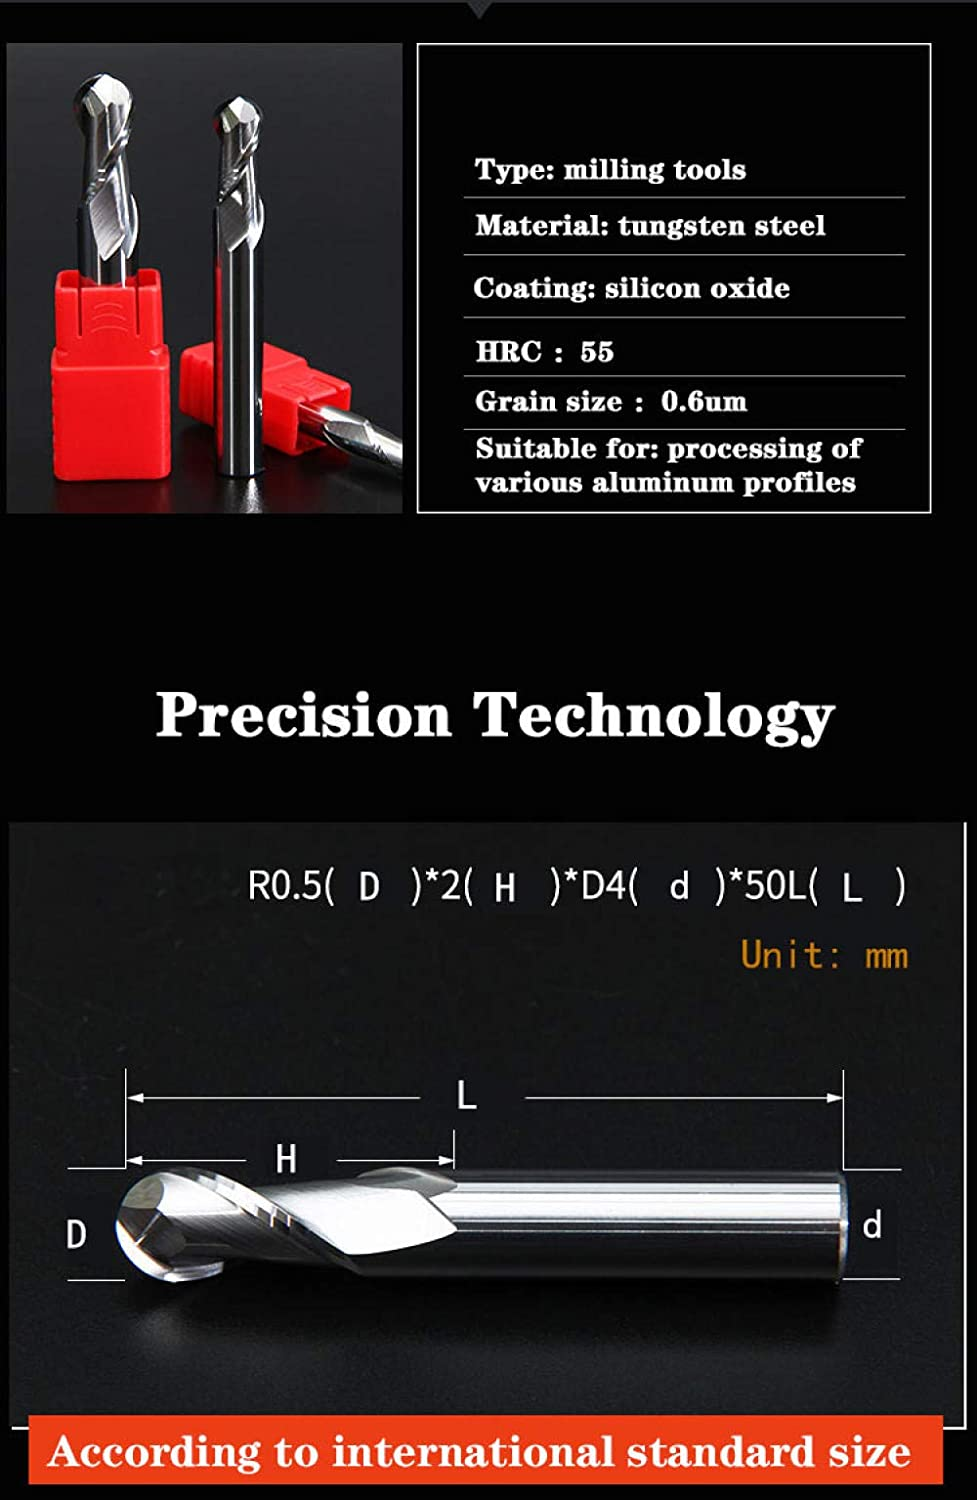 Milling Cutter 2 Flute Cutting HRC55 2mm 3mm 4mm Aluminium Copper Machining CNC Tungsten Steel Sprial Bit Milling Cutter Ball Nose End Mill R1-R6x24xD12x100L R4x16xd8x75l